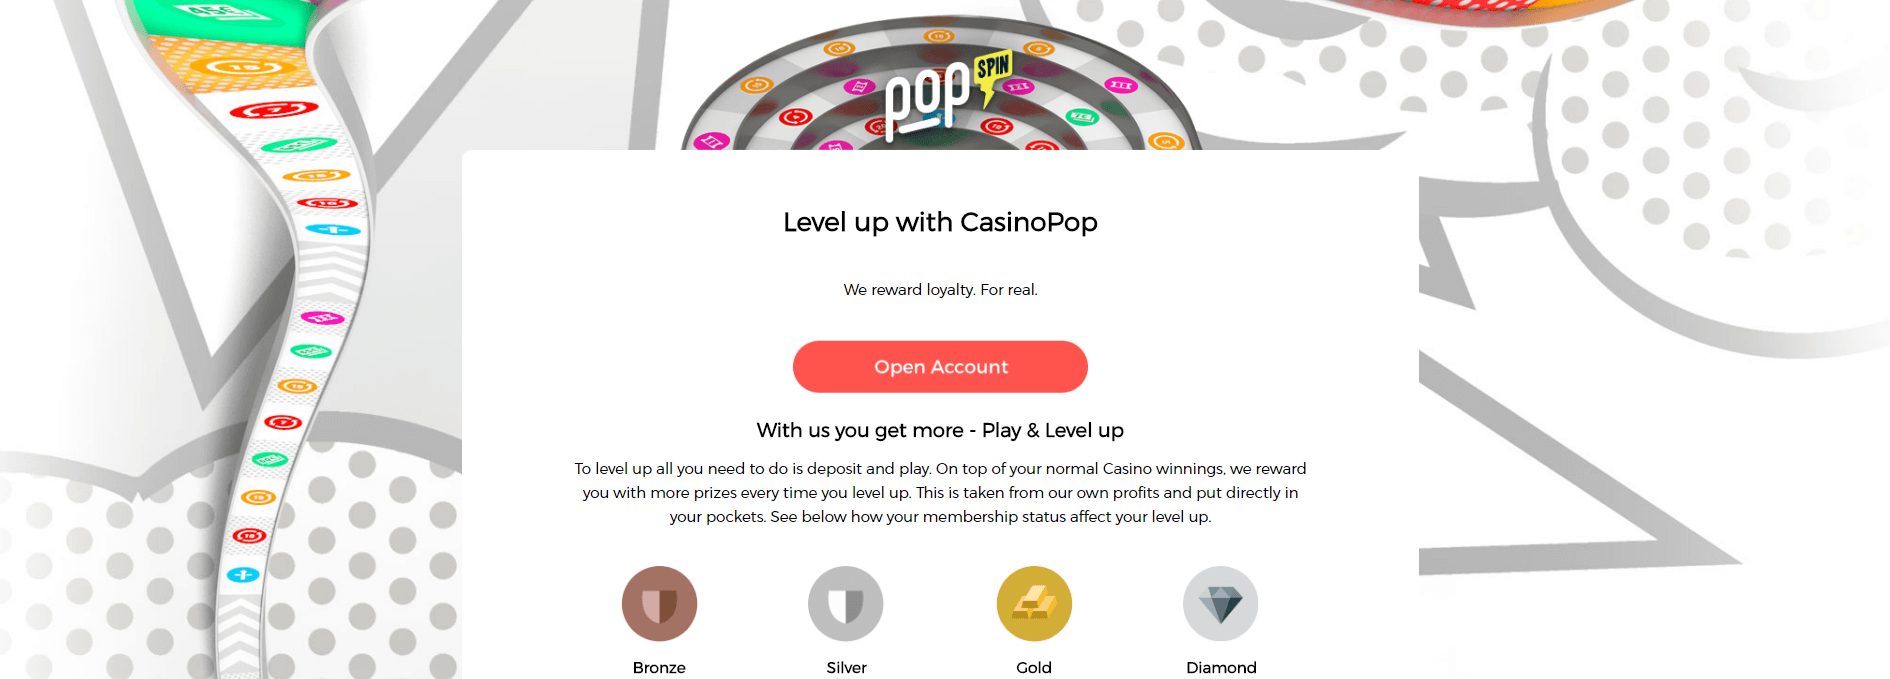 CasinoPop 3